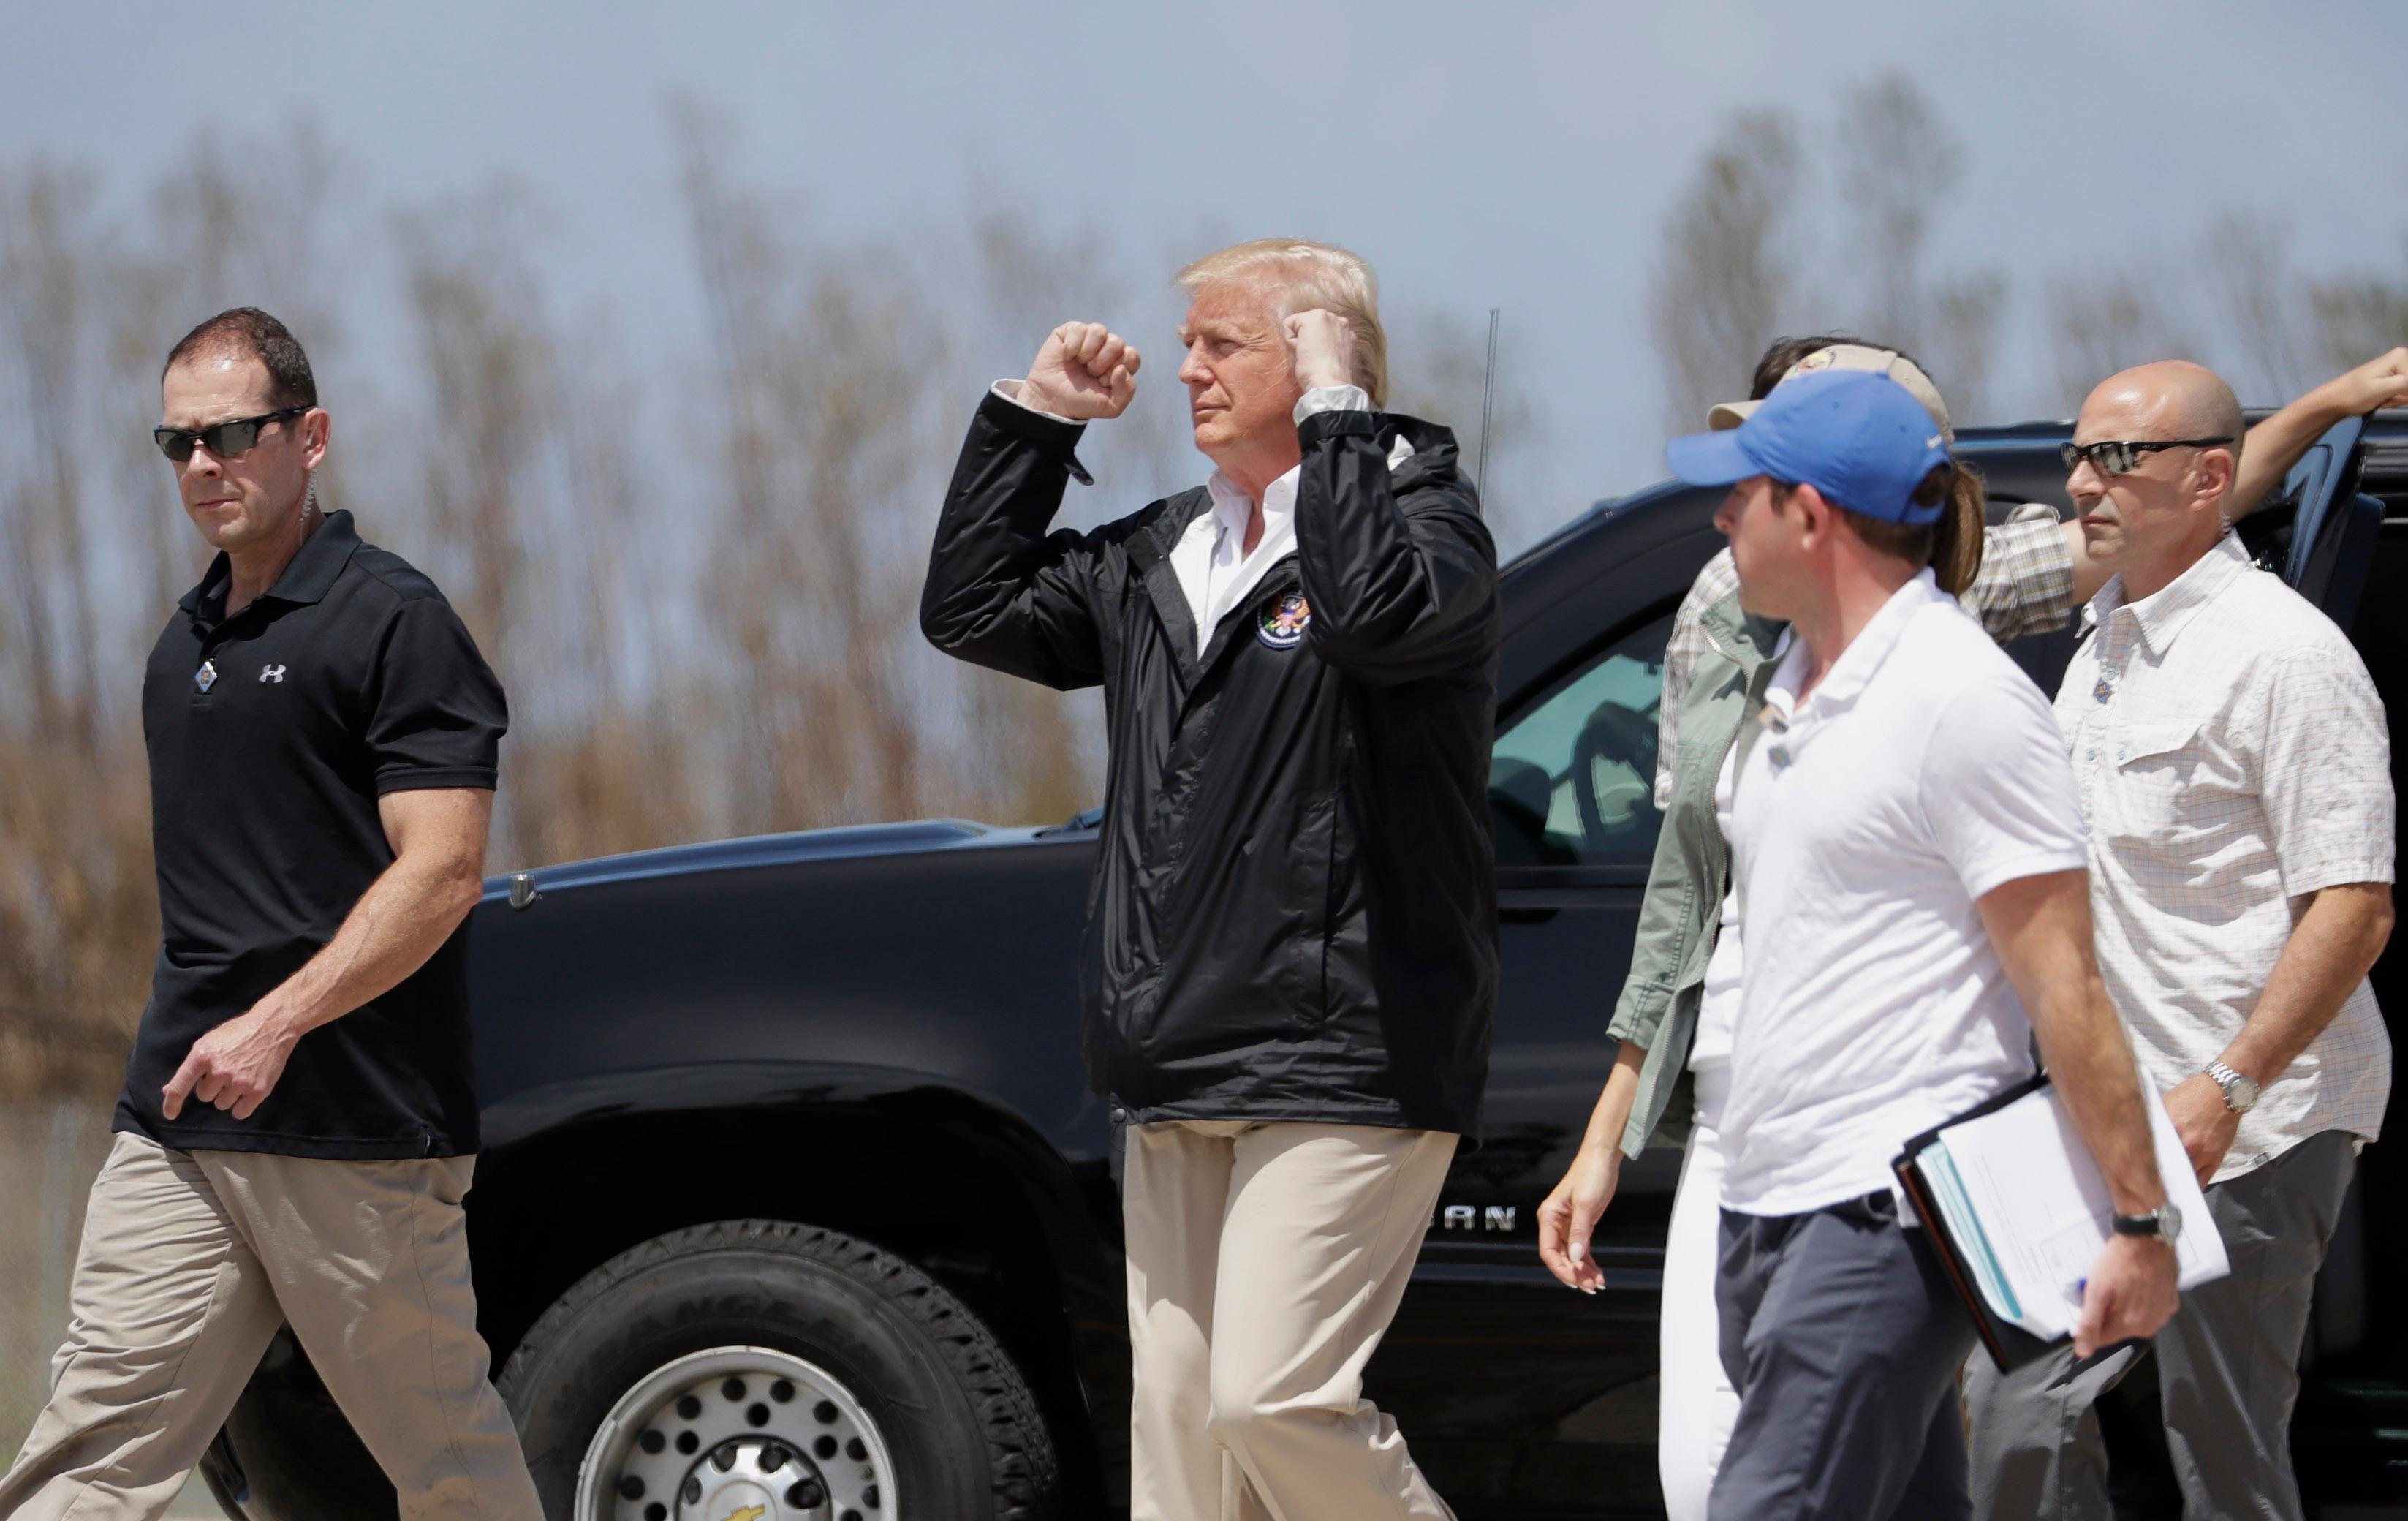 President Donald Trump gestures after arriving at the Luis Muñiz Air National Guard Base in San Juan, Puerto Rico, Tuesday, Oct. 3, 2017. Trump is visiting Puerto Rico in the wake of Hurricane Maria. (AP Photo/Evan Vucci)